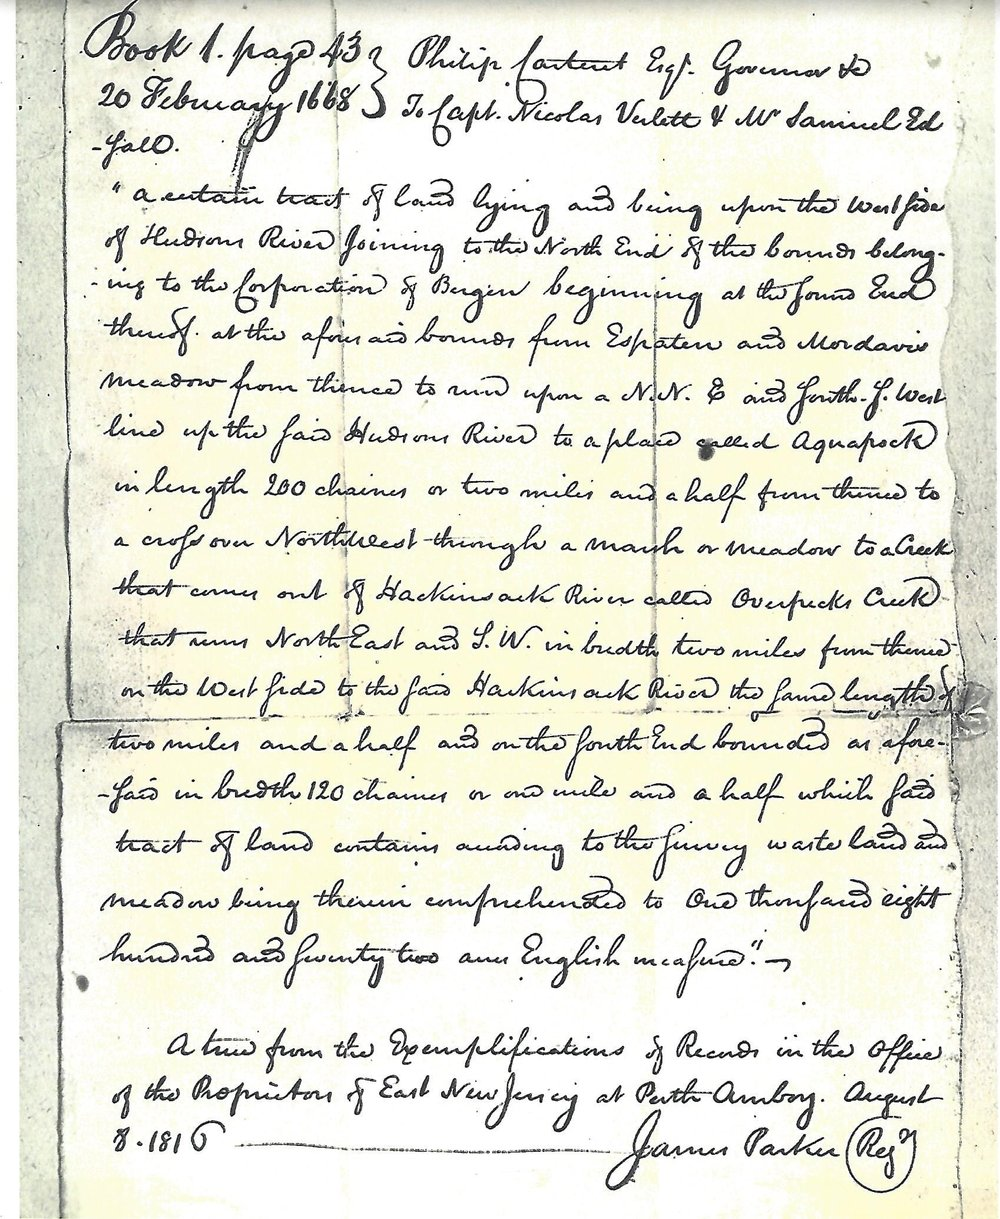 Earliest deed of land, February 20, 1668 (copy from Bergen County records)